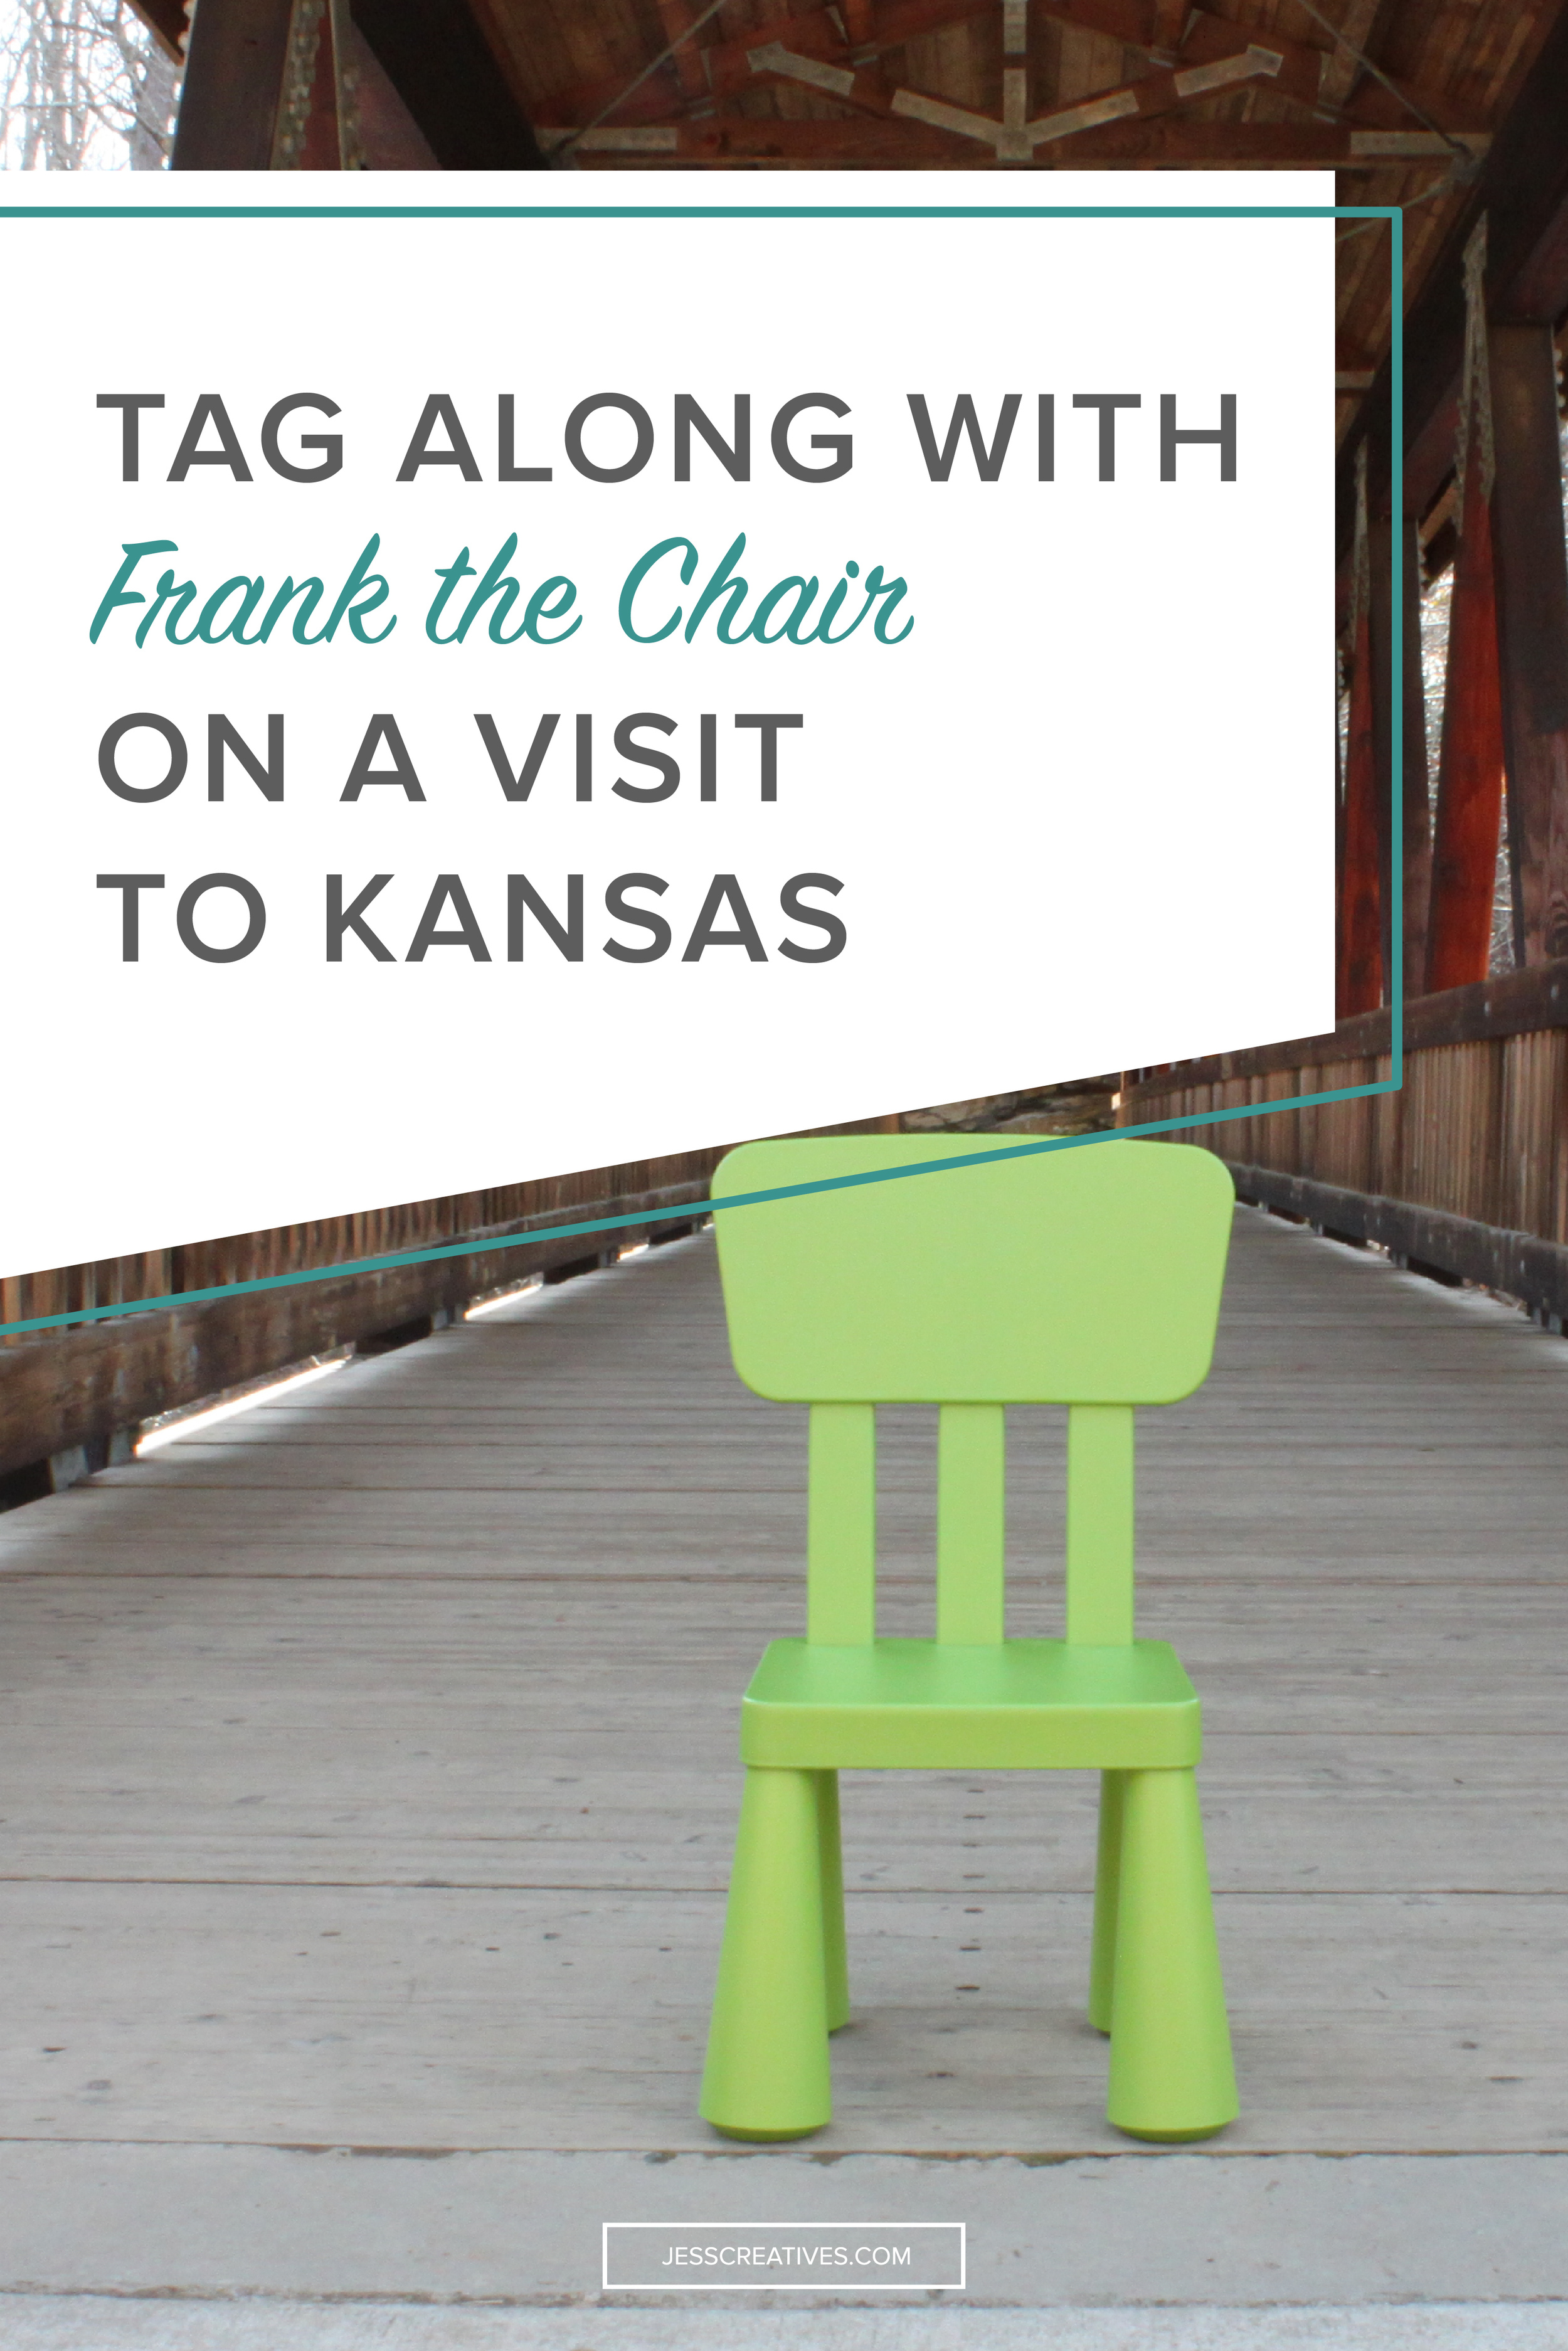 Tag along with Frank the Chair on a visit to Kansas!